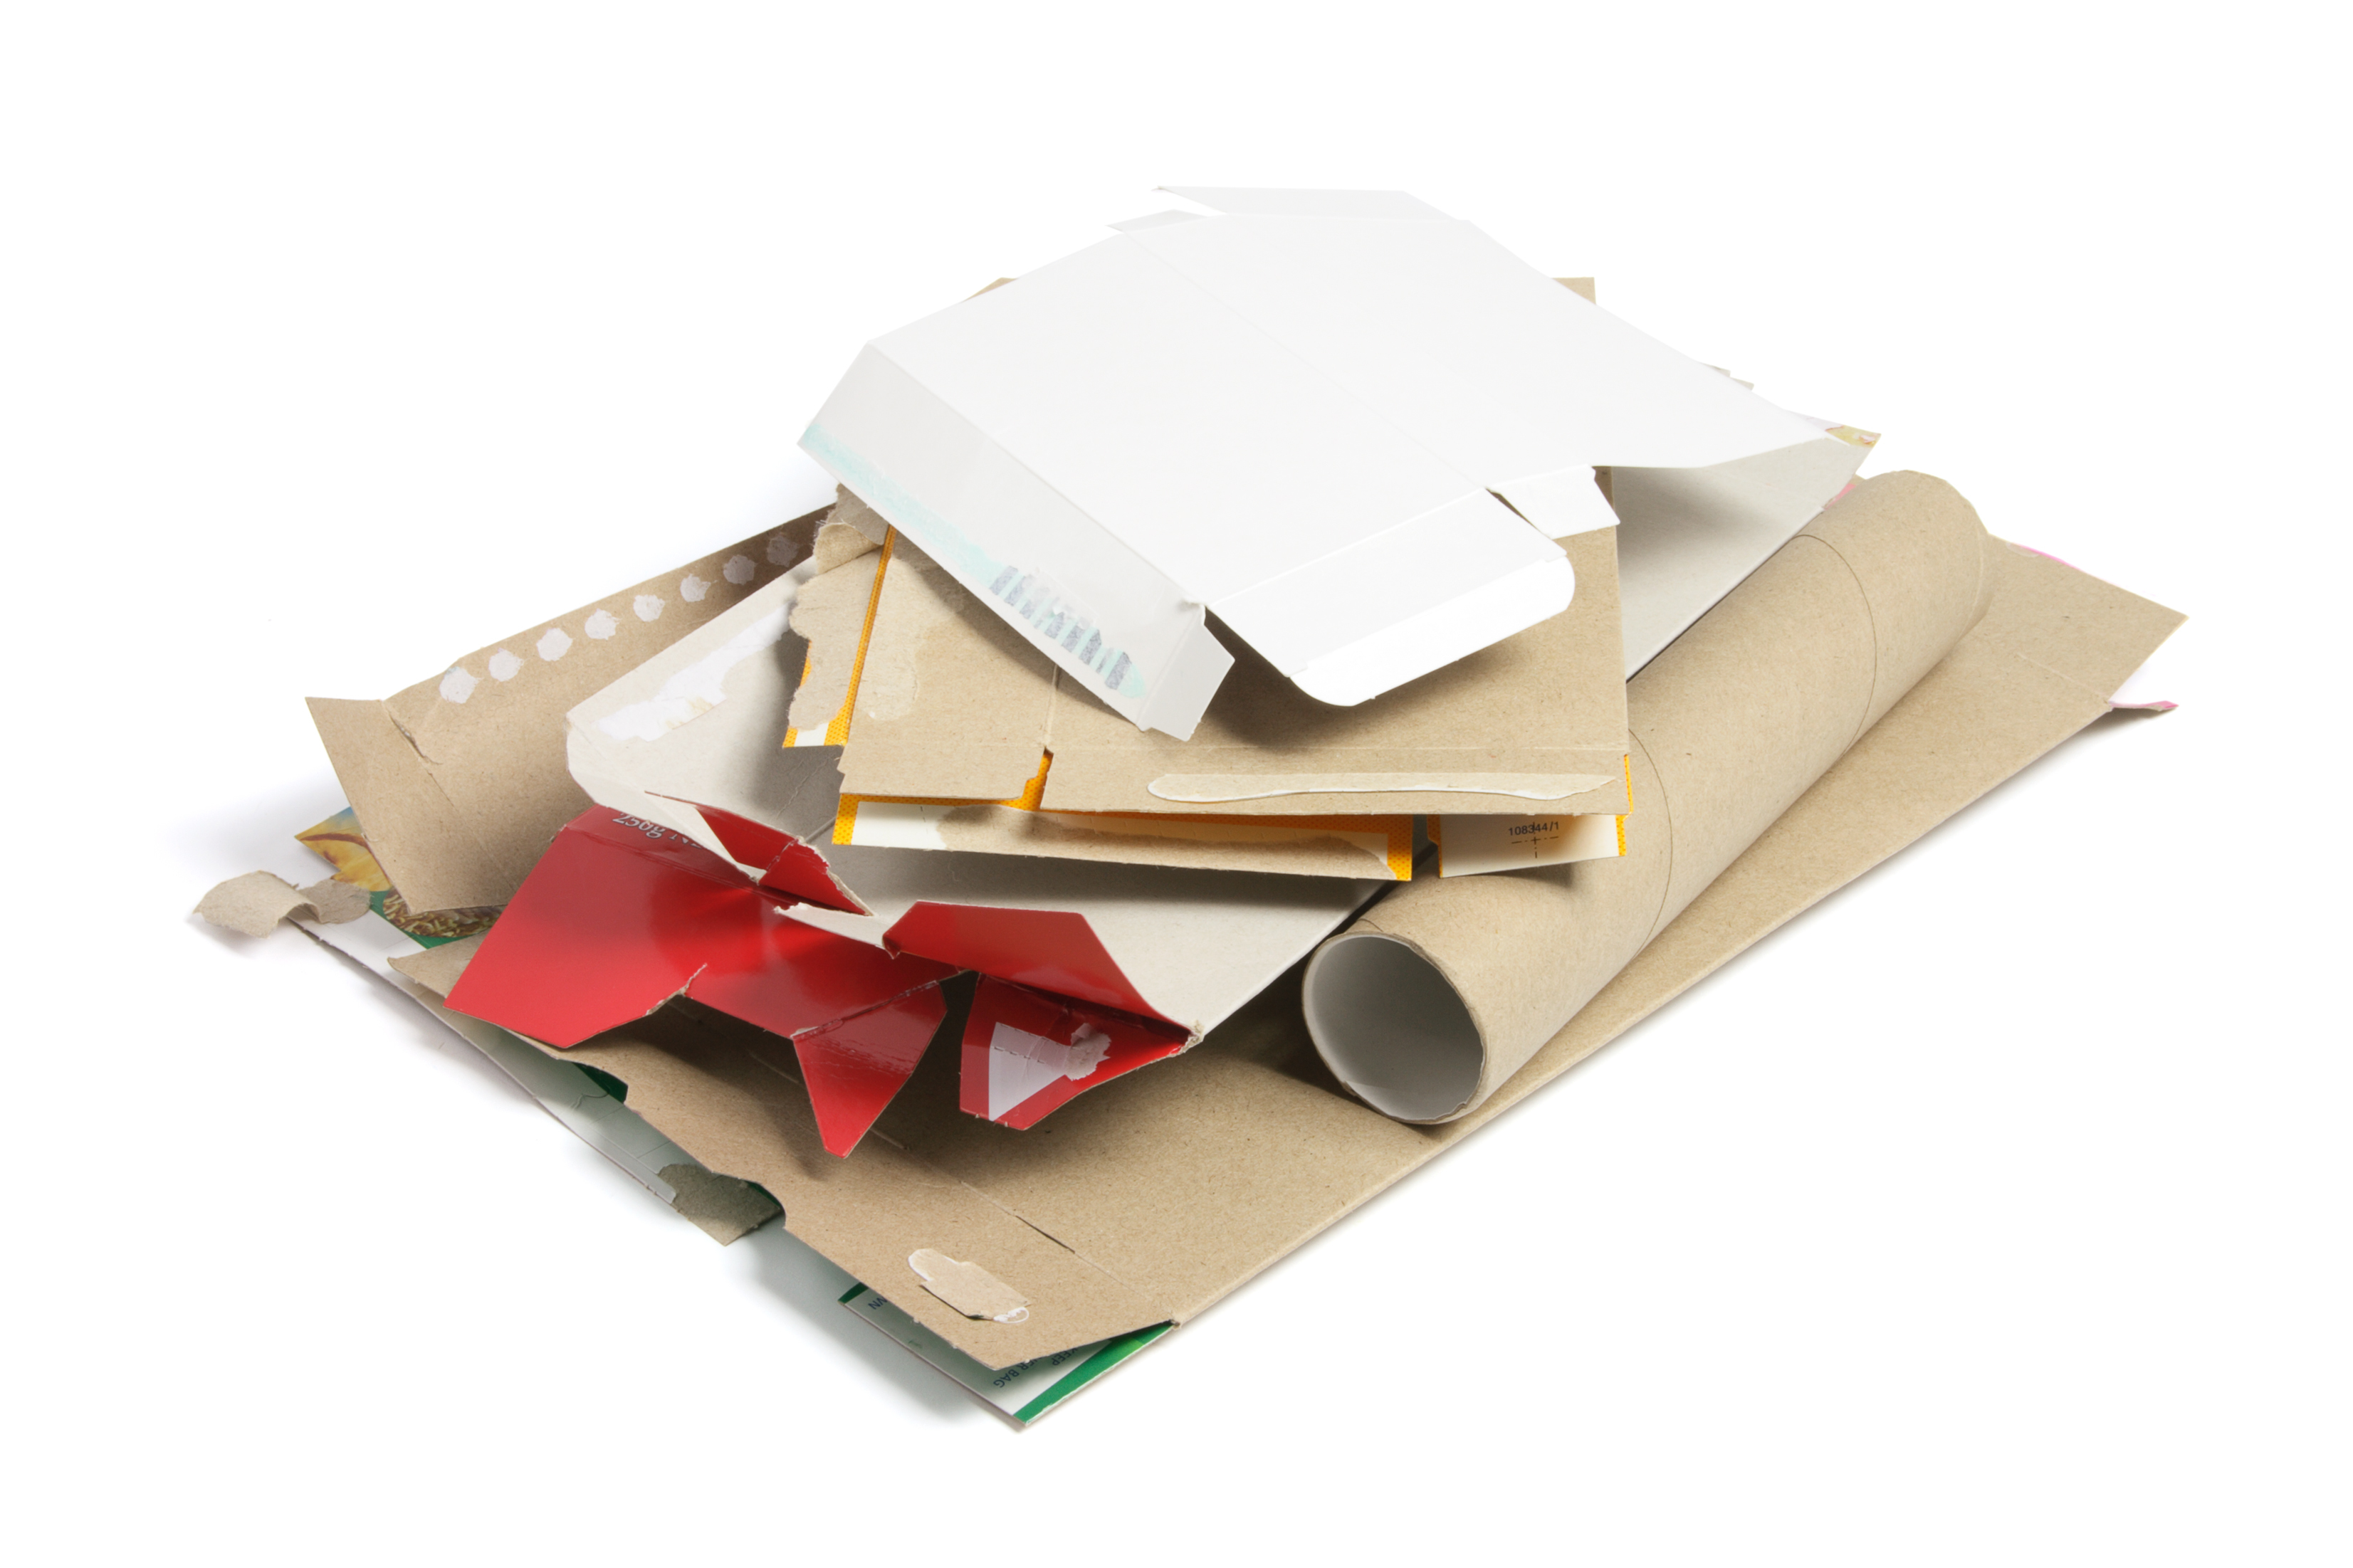 how to recycle cardboard - flatten it first